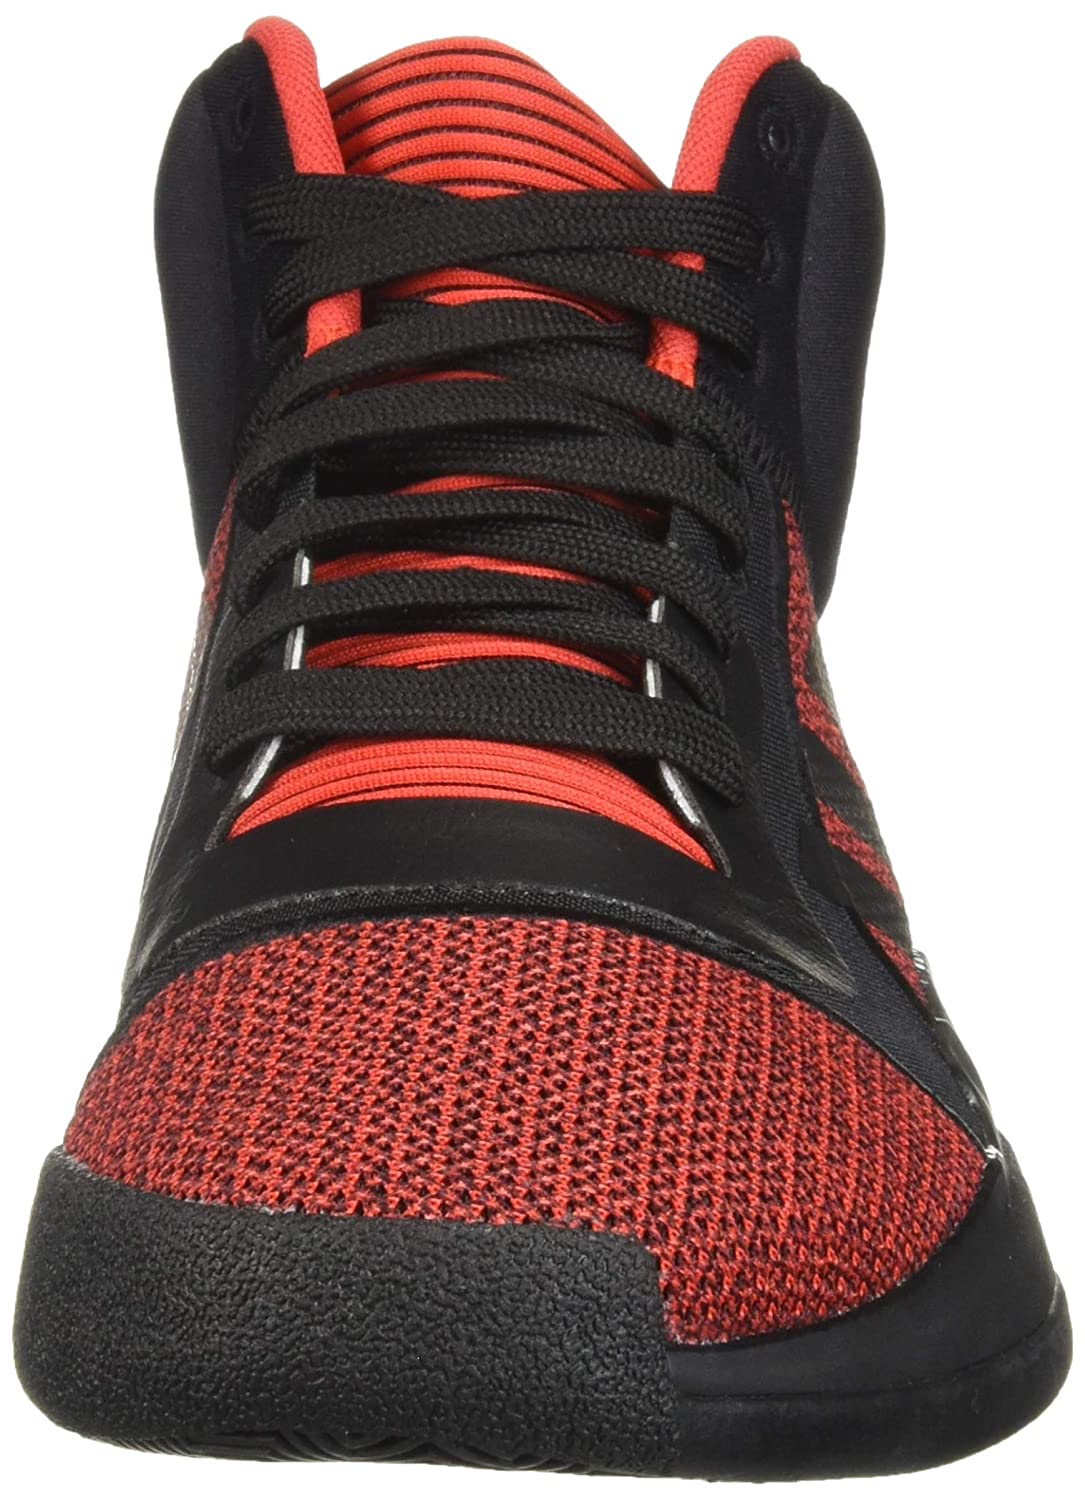 adidas Men s Marquee Boost Low, Active red Black aero Blue, 10 M US